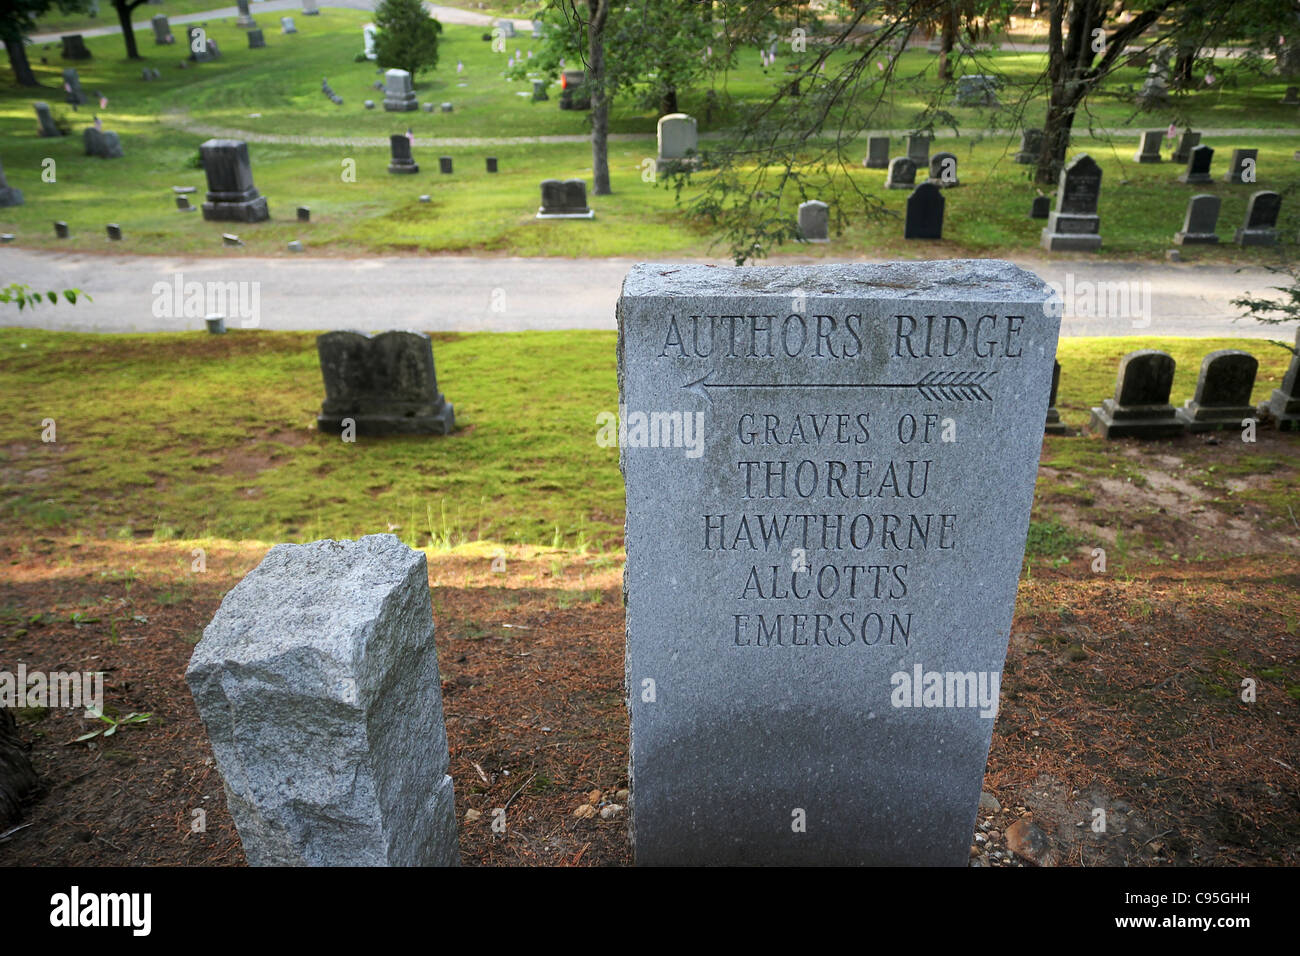 Sleepy Hollow Cemetery Stock Photos & Sleepy Hollow Cemetery